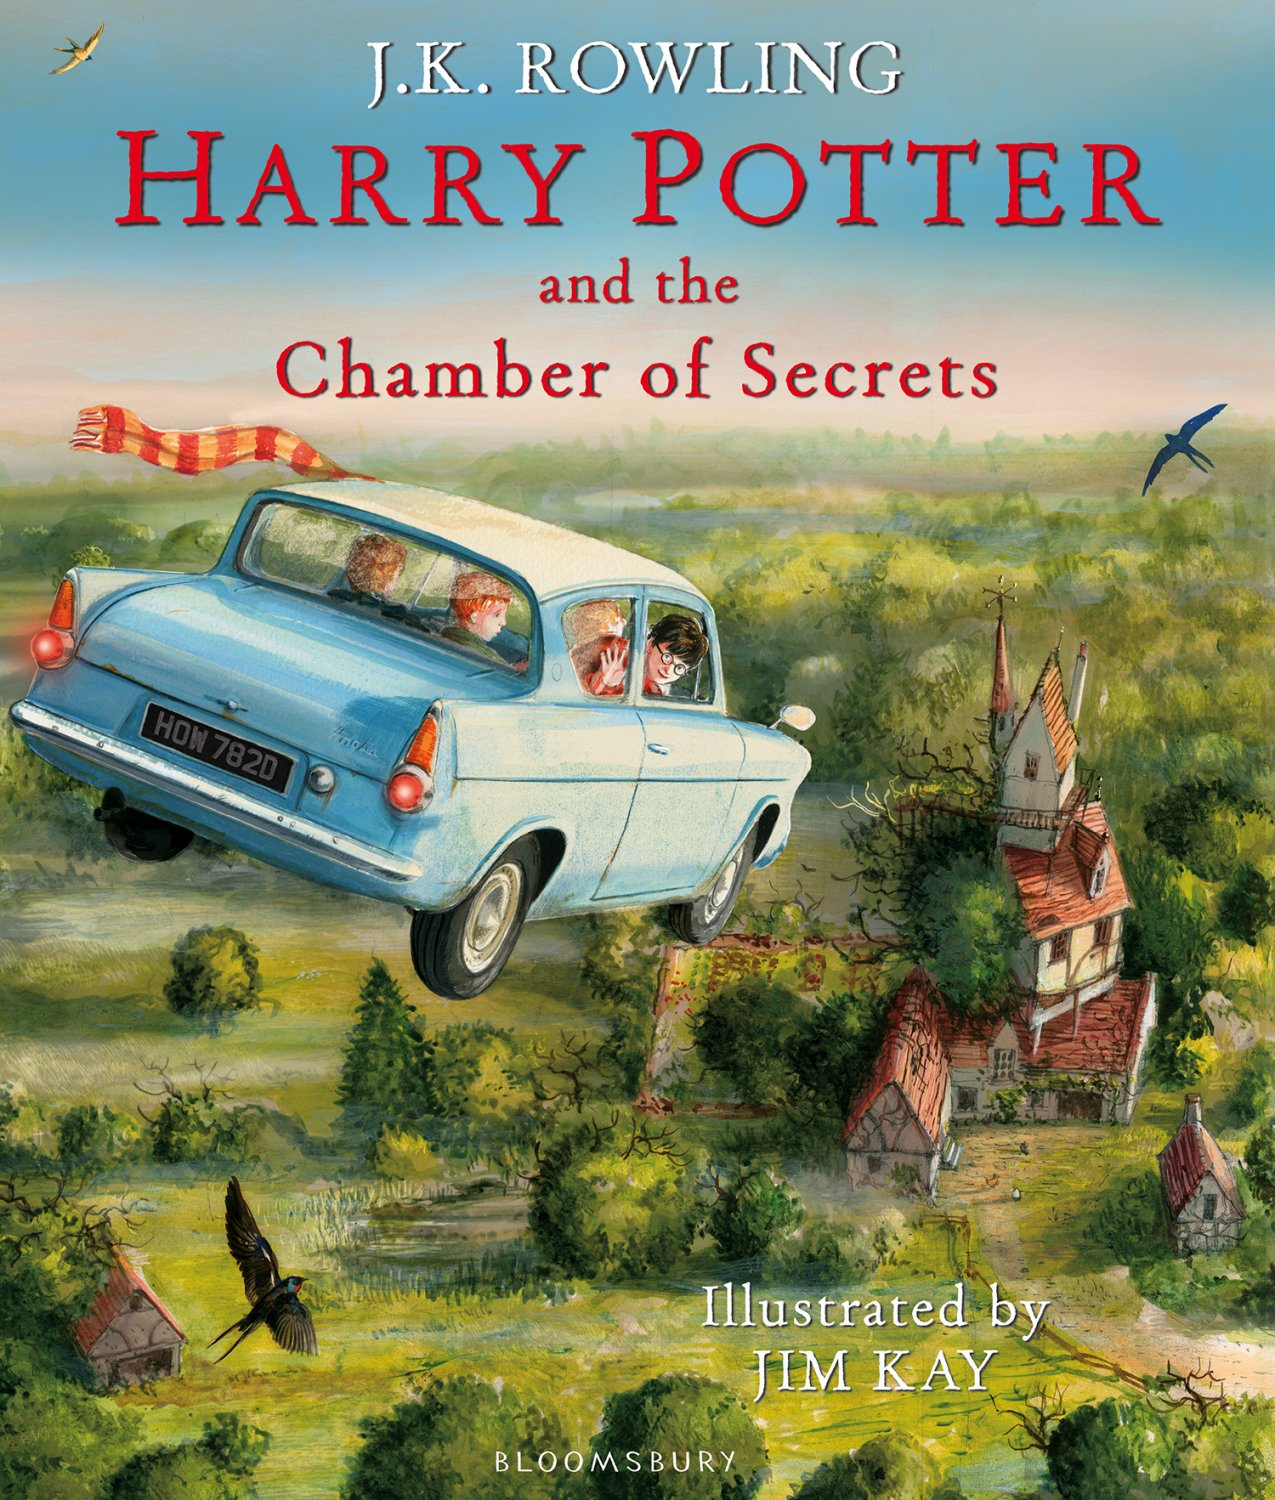 harry_potter_and_the_chamber_of_secrets_illustrated_edition_cover.jpg